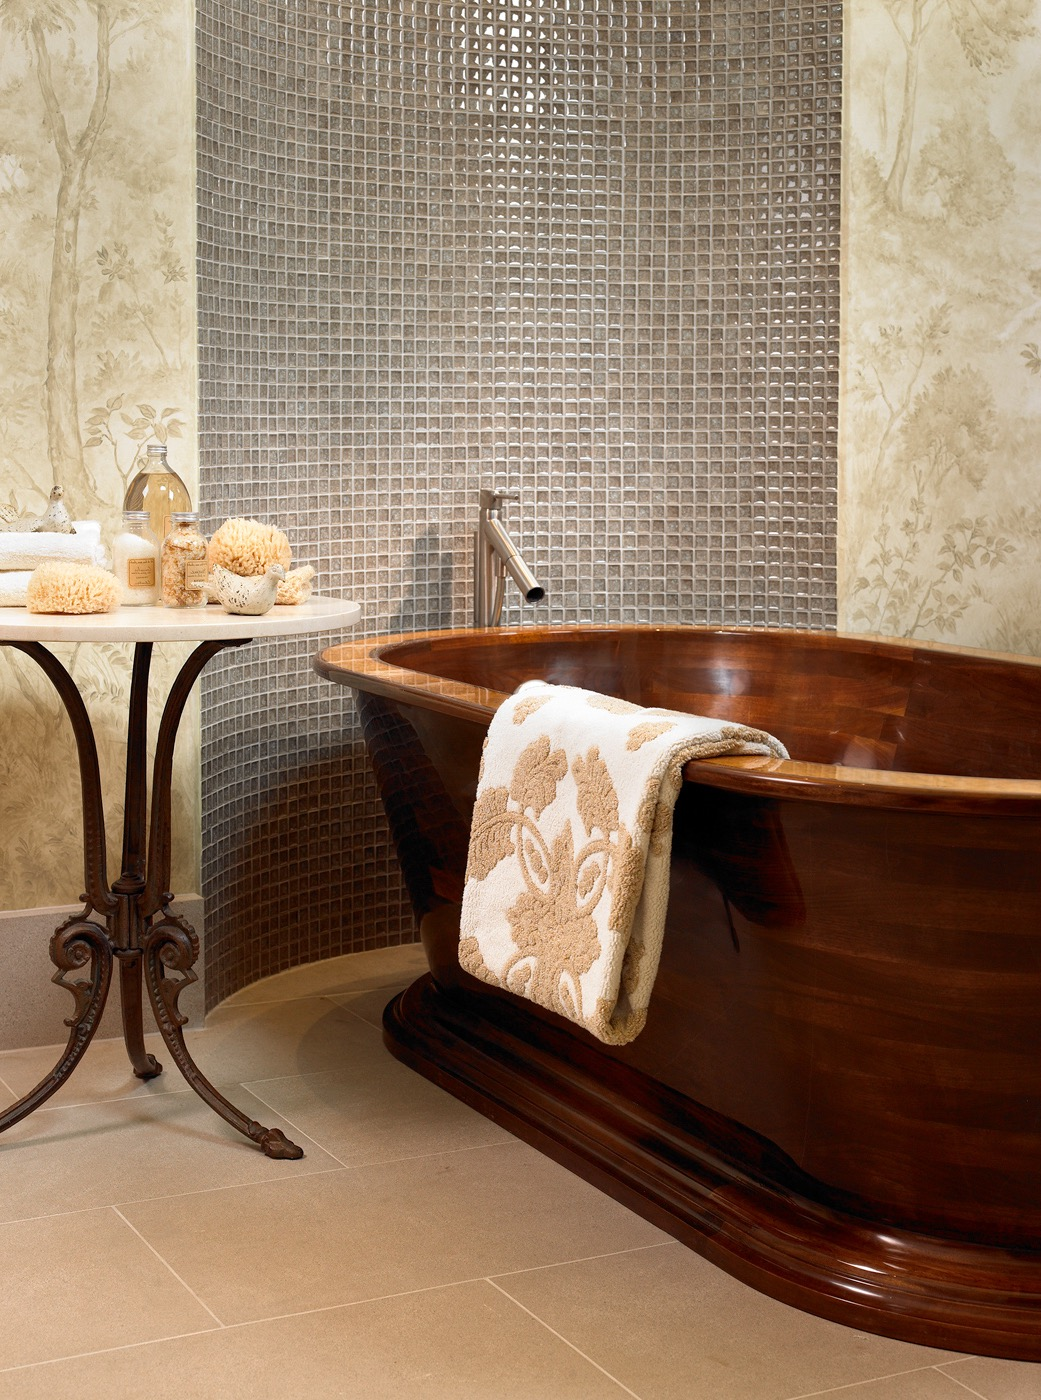 Modern Ethnic Style Bathroom With Bathroom With Wooden Soaking Tub And Tile Walls (View 15 of 15)